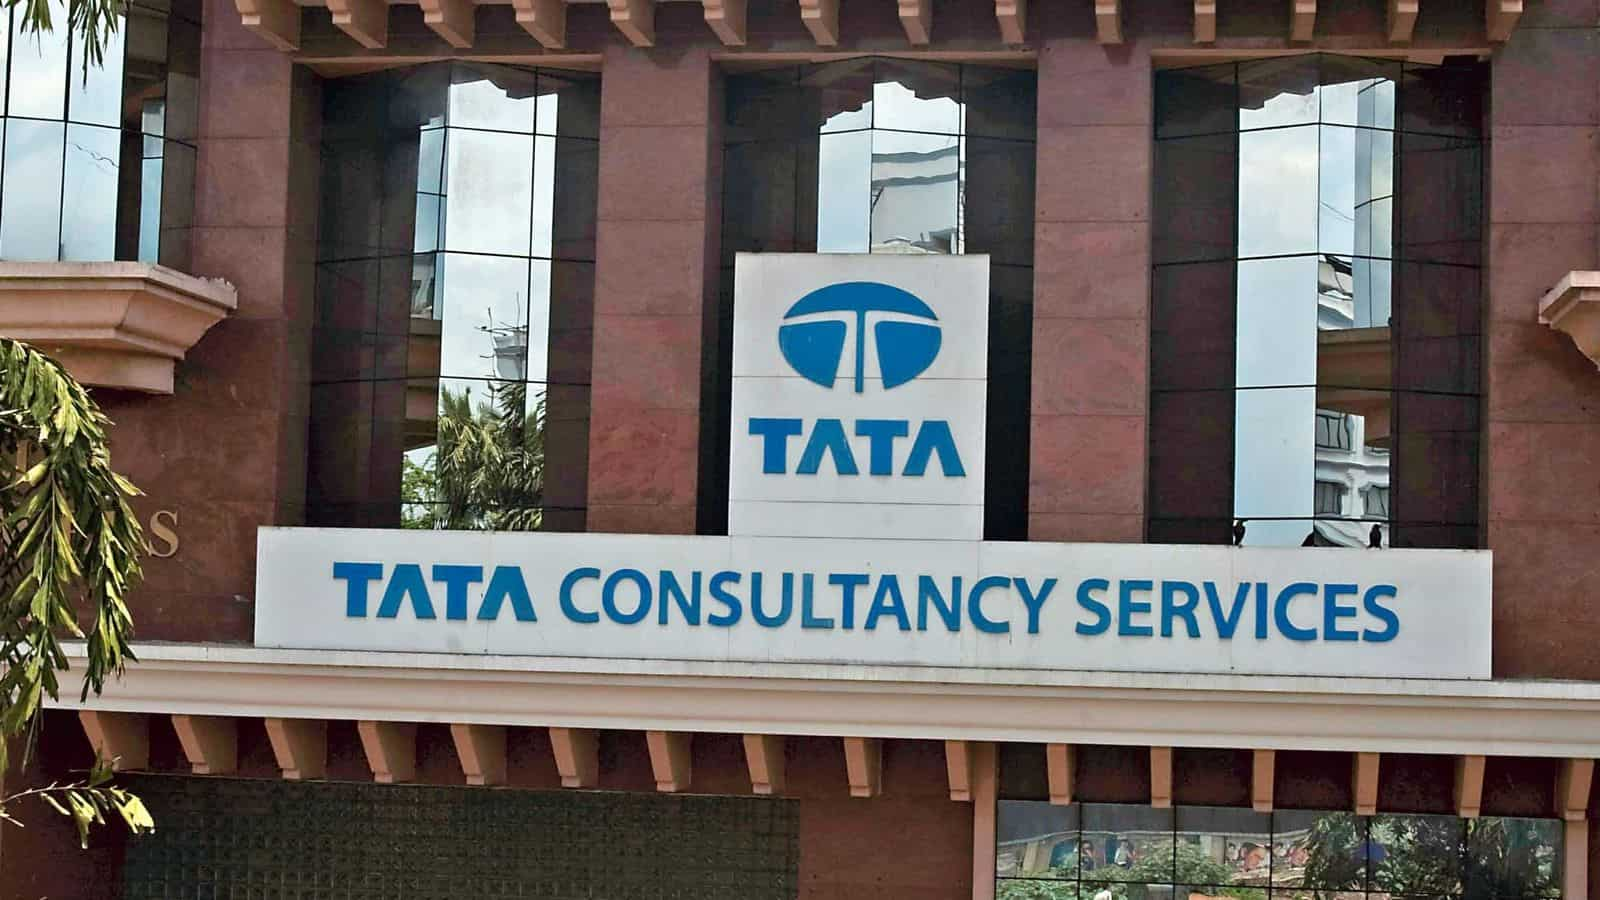 TCS ties up with Transport for London